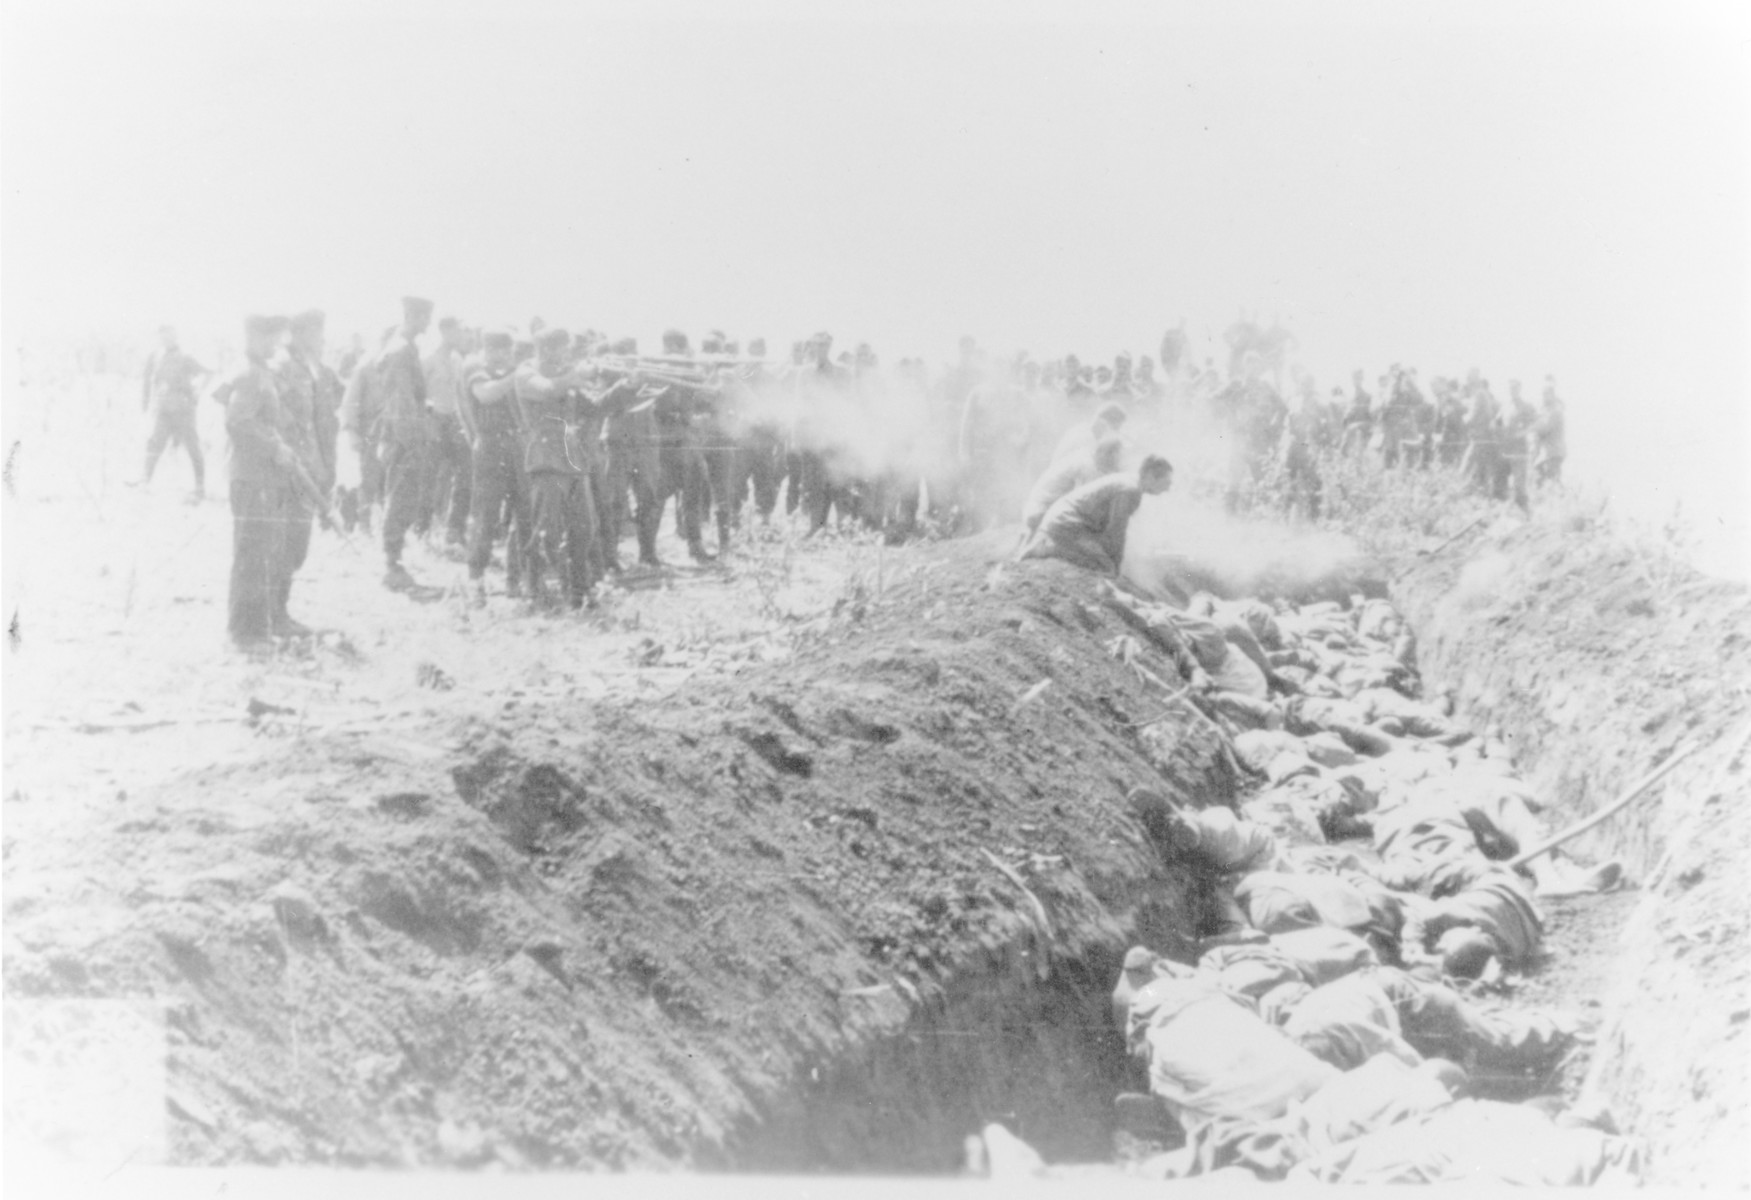 Men with an unidentified unit execute a group of Soviet civilians kneeling by the side of a mass grave.